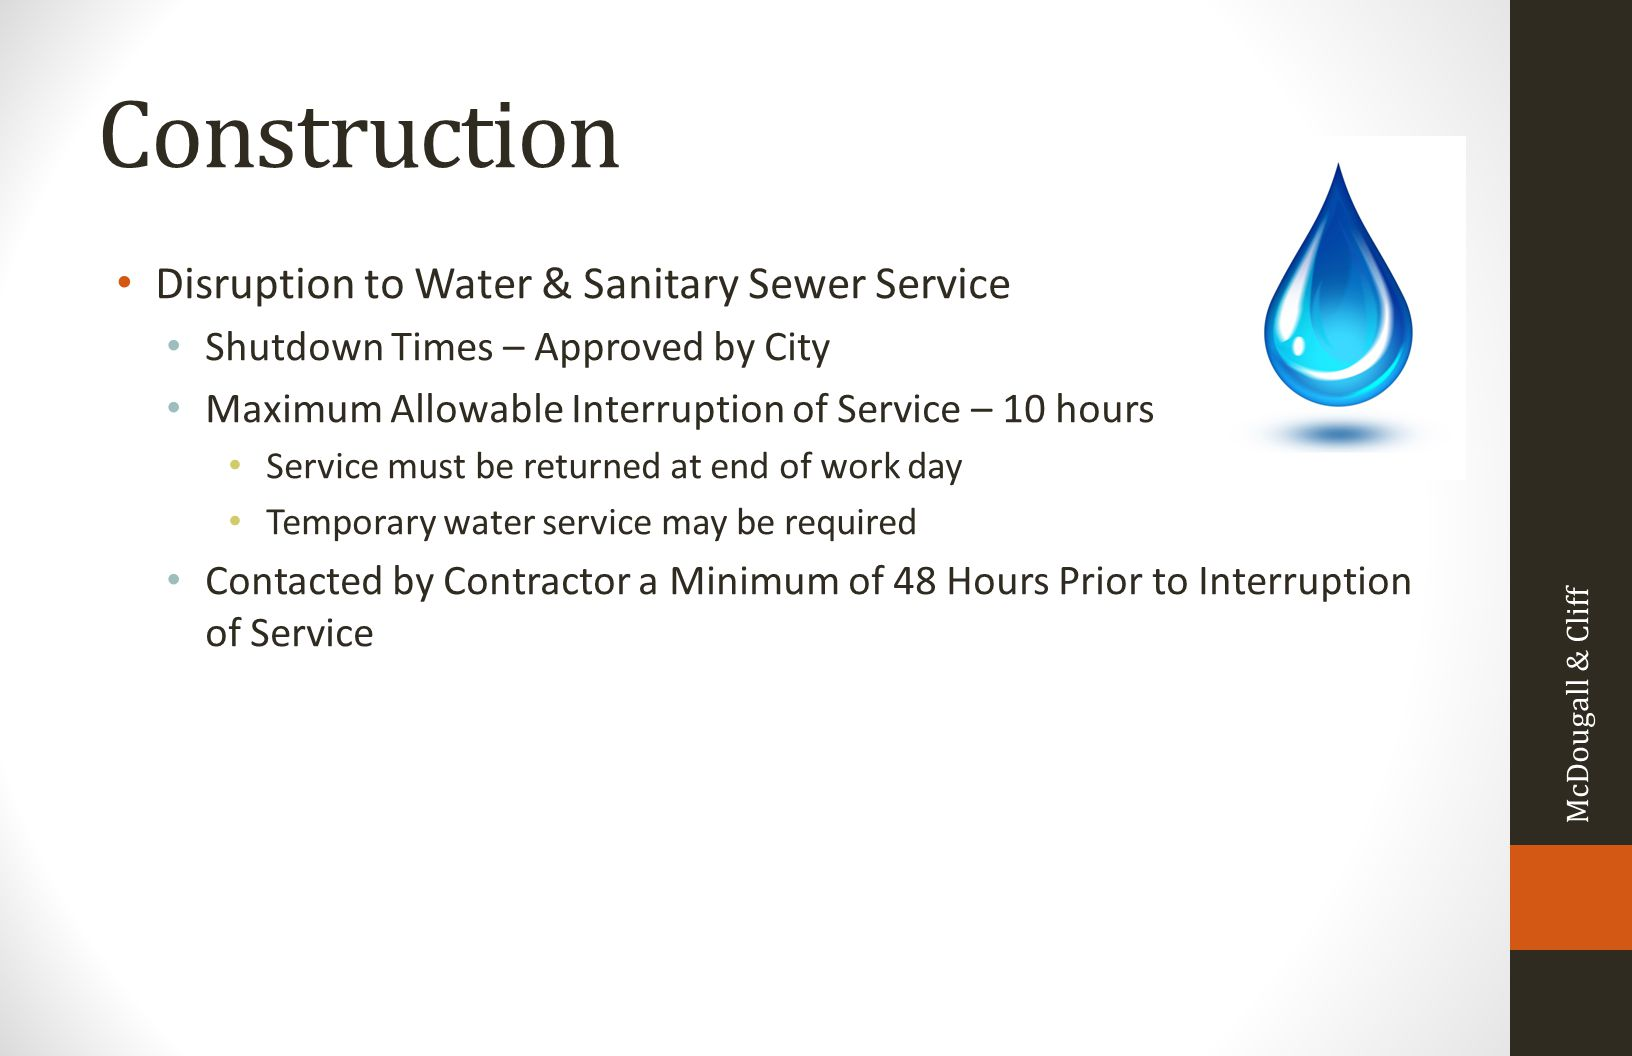 Construction Disruption to Water & Sanitary Sewer Service Shutdown Times – Approved by City Maximum Allowable Interruption of Service – 10 hours Service must be returned at end of work day Temporary water service may be required Contacted by Contractor a Minimum of 48 Hours Prior to Interruption of Service McDougall & Cliff